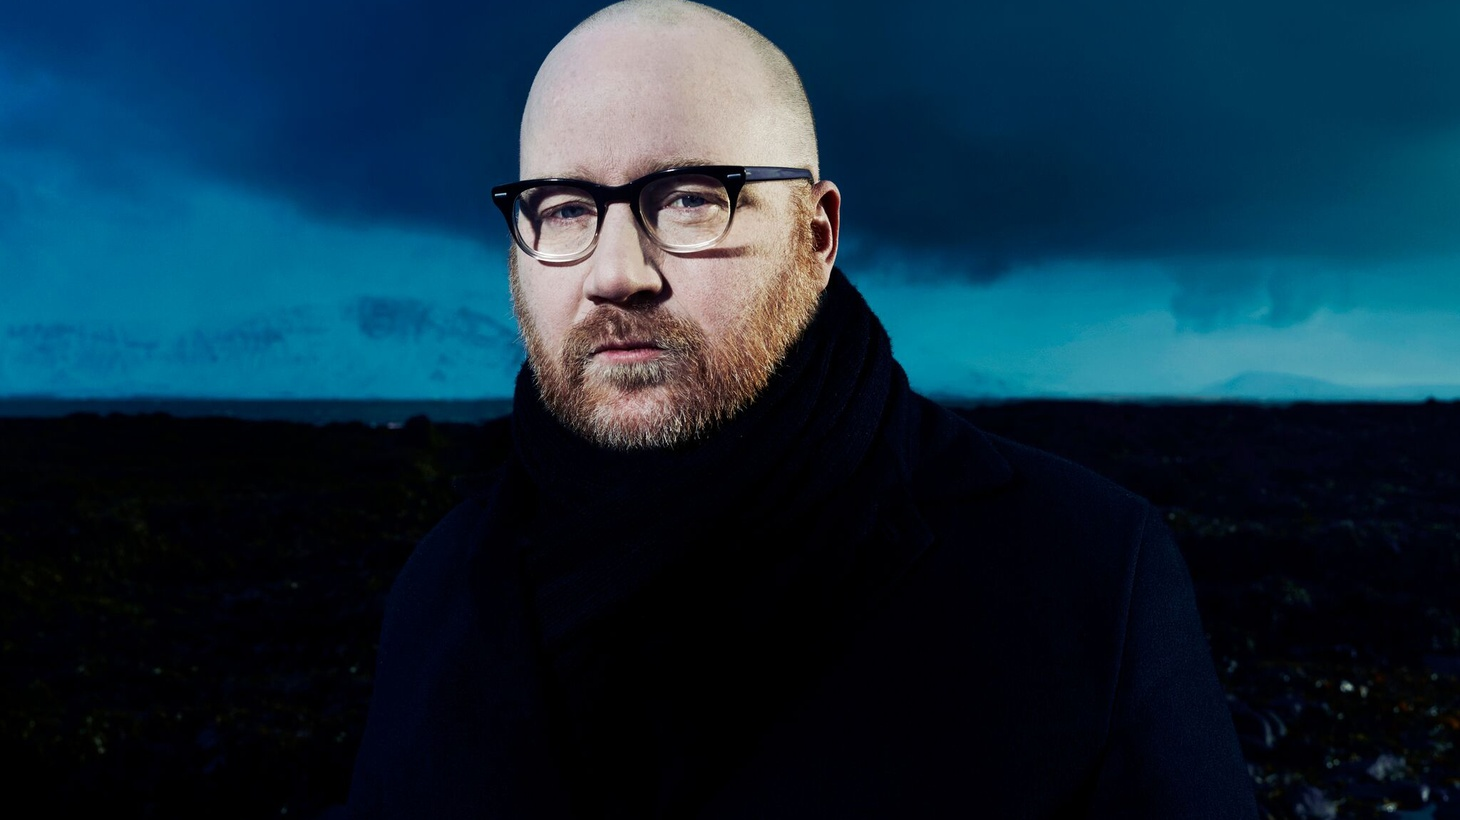 Icelandic composerJóhann Jóhannsson passed away earlier this year, and the last music he created before his untimely death is the score to the upcoming horror film, Mandy.